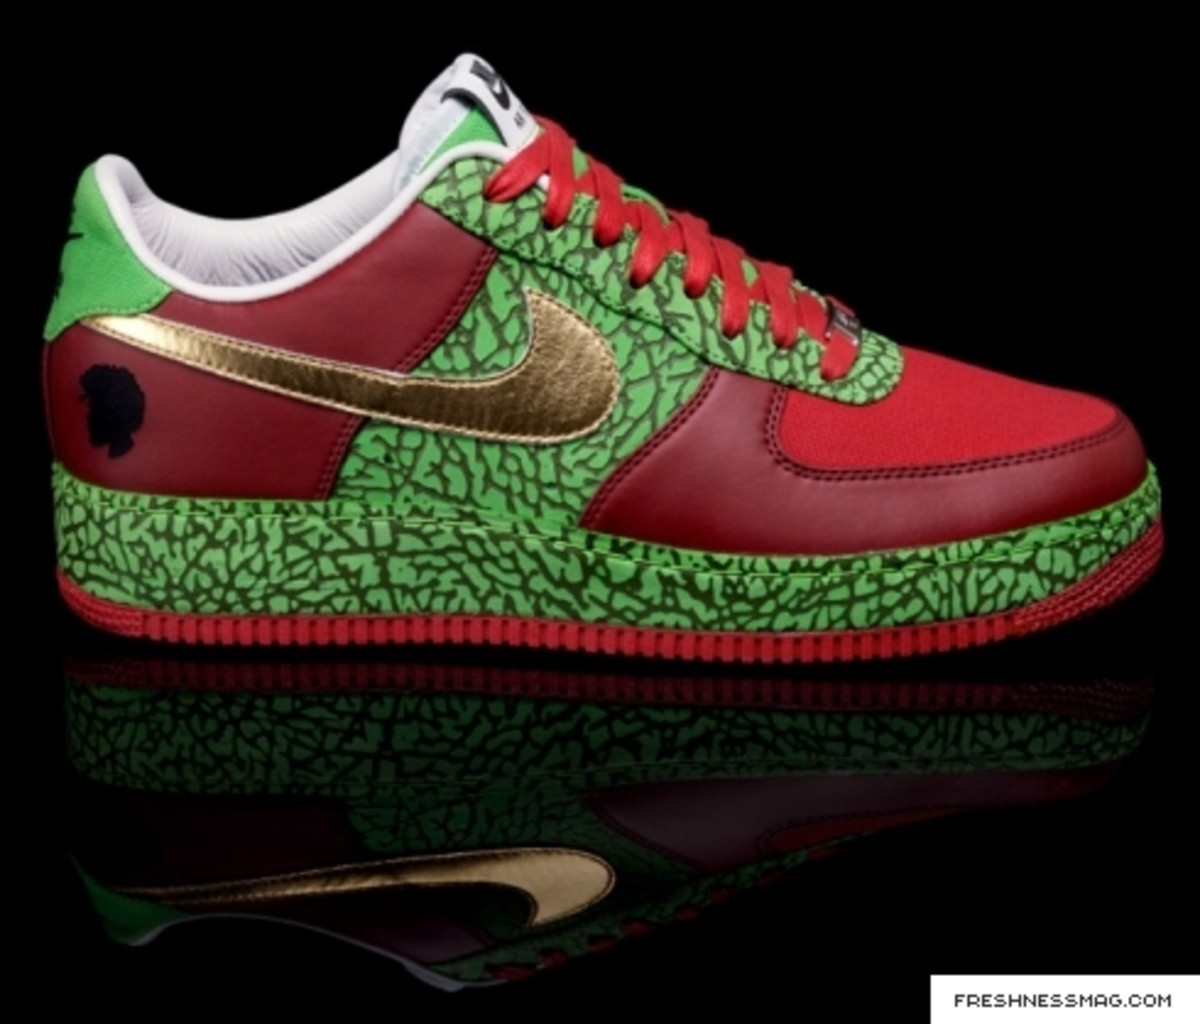 Nike x ?uestlove - 1WORLD - Air Force 1 Air Questo